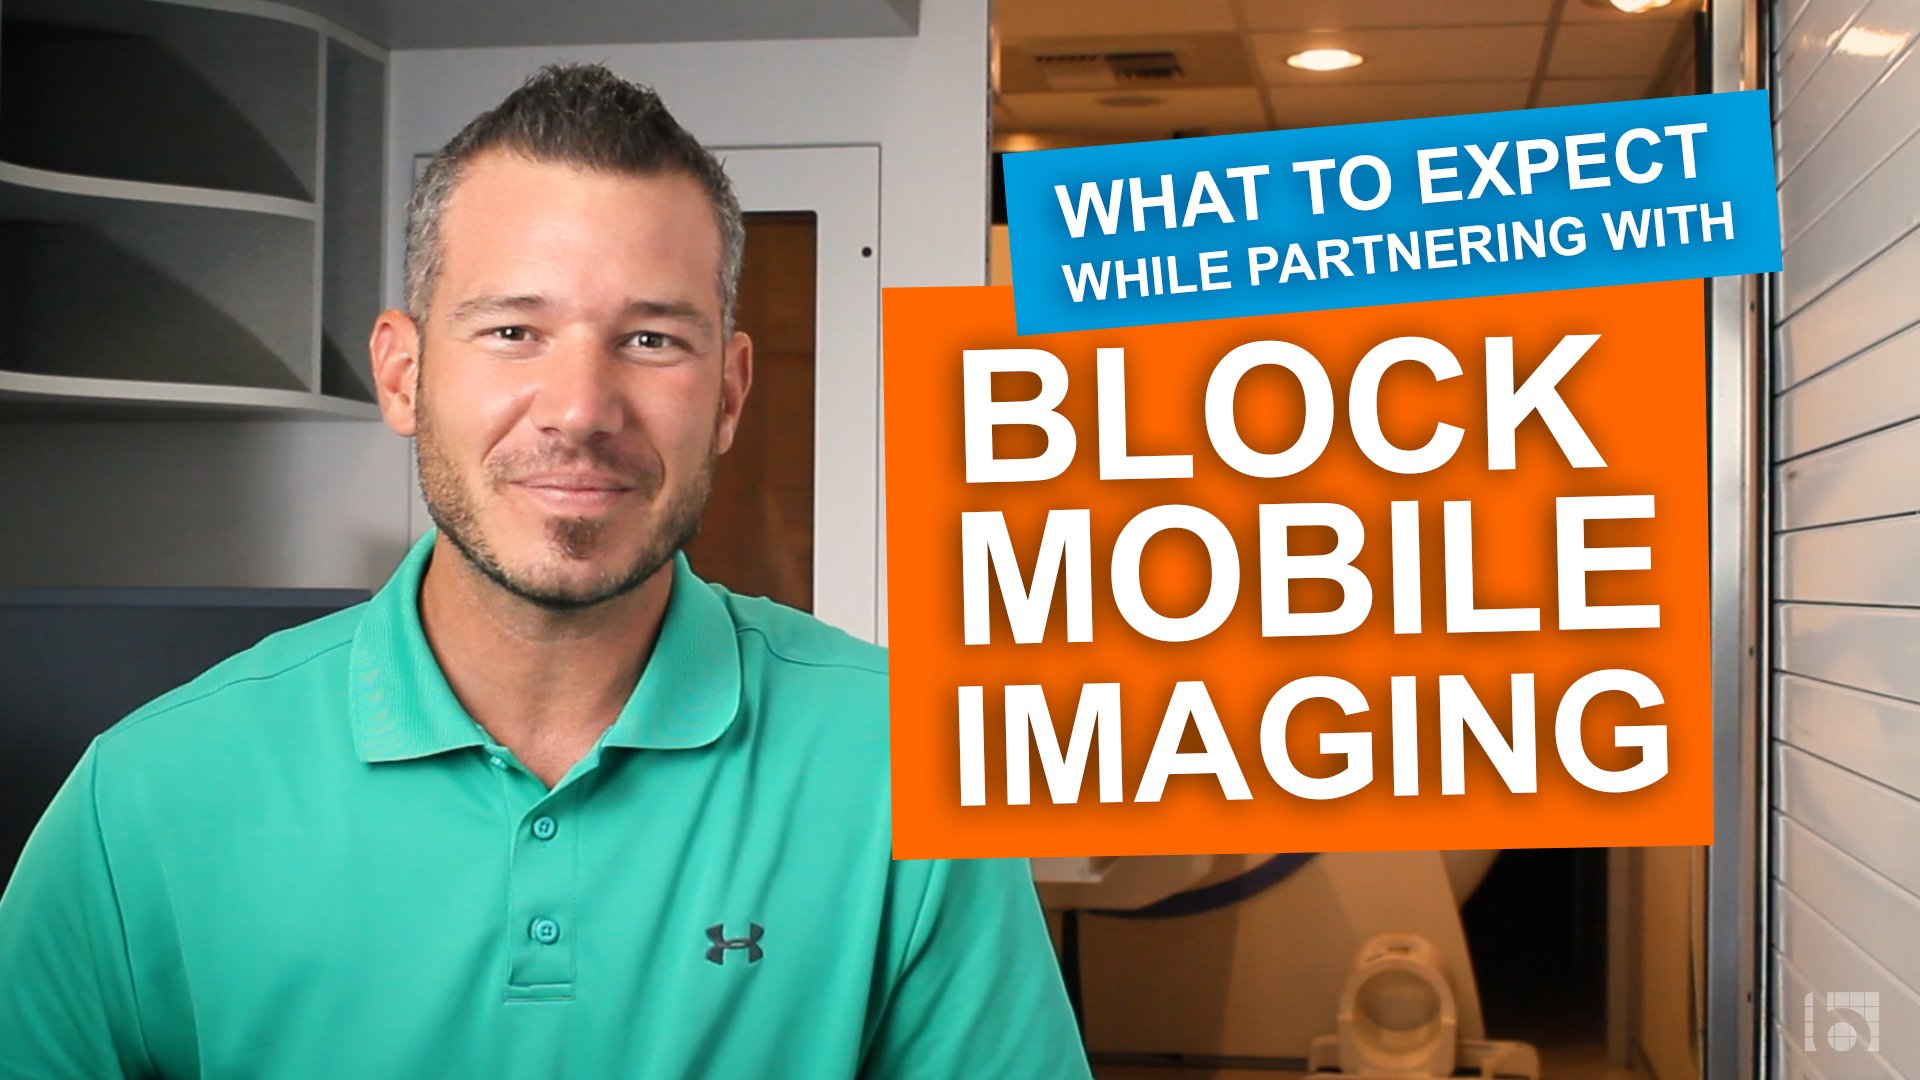 What to Expect While Partnering With Block Mobile Imaging